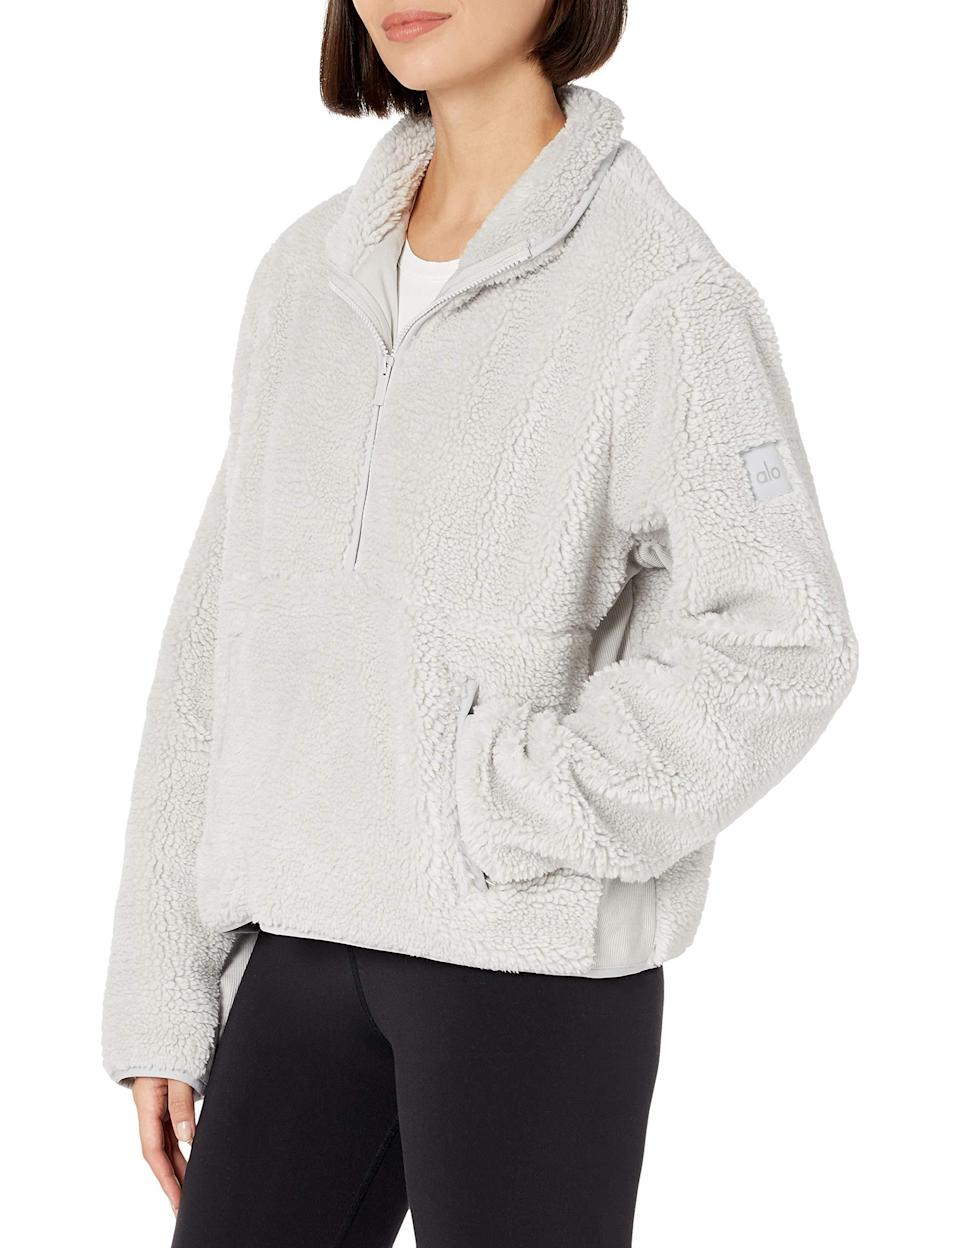 "<br><br><strong>Alo Yoga</strong> Women's Shanti Half Zip Sherpa Jacket, $, available at <a href=""https://amzn.to/3nLAHBI"" rel=""nofollow noopener"" target=""_blank"" data-ylk=""slk:Amazon"" class=""link rapid-noclick-resp"">Amazon</a>"